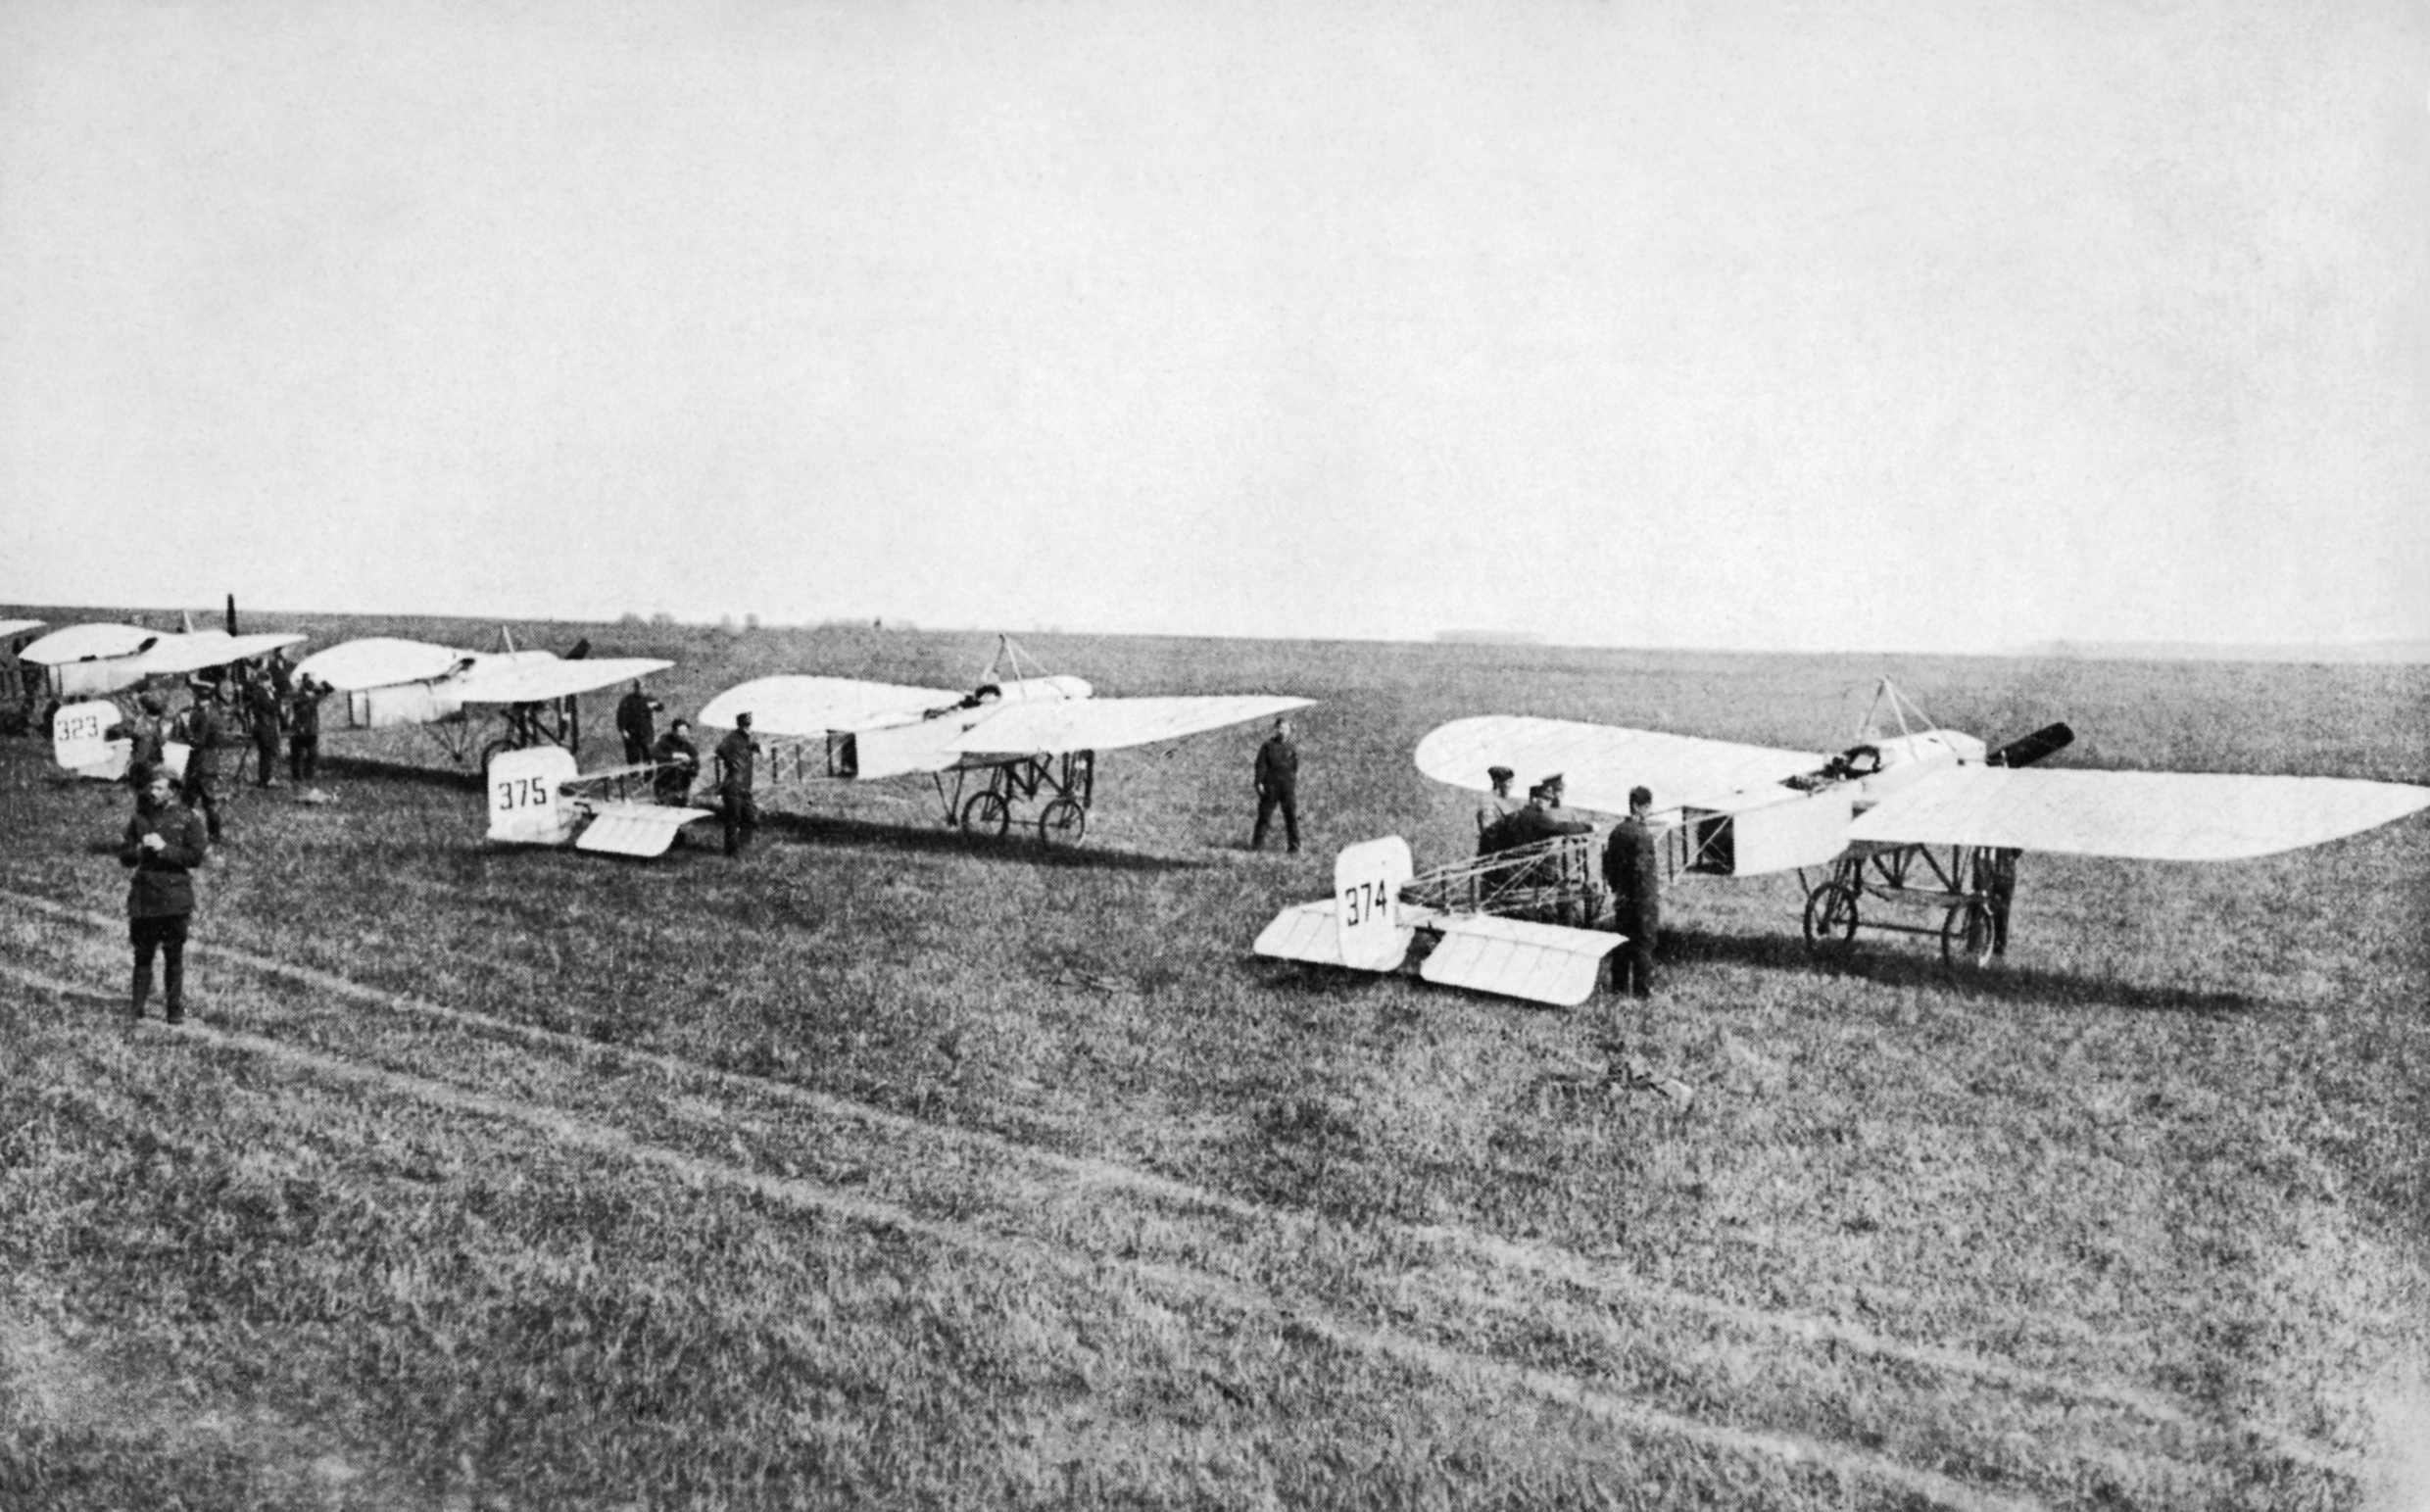 THE ROYAL FLYING CORPS 1912 - 1918, Commercial photograph